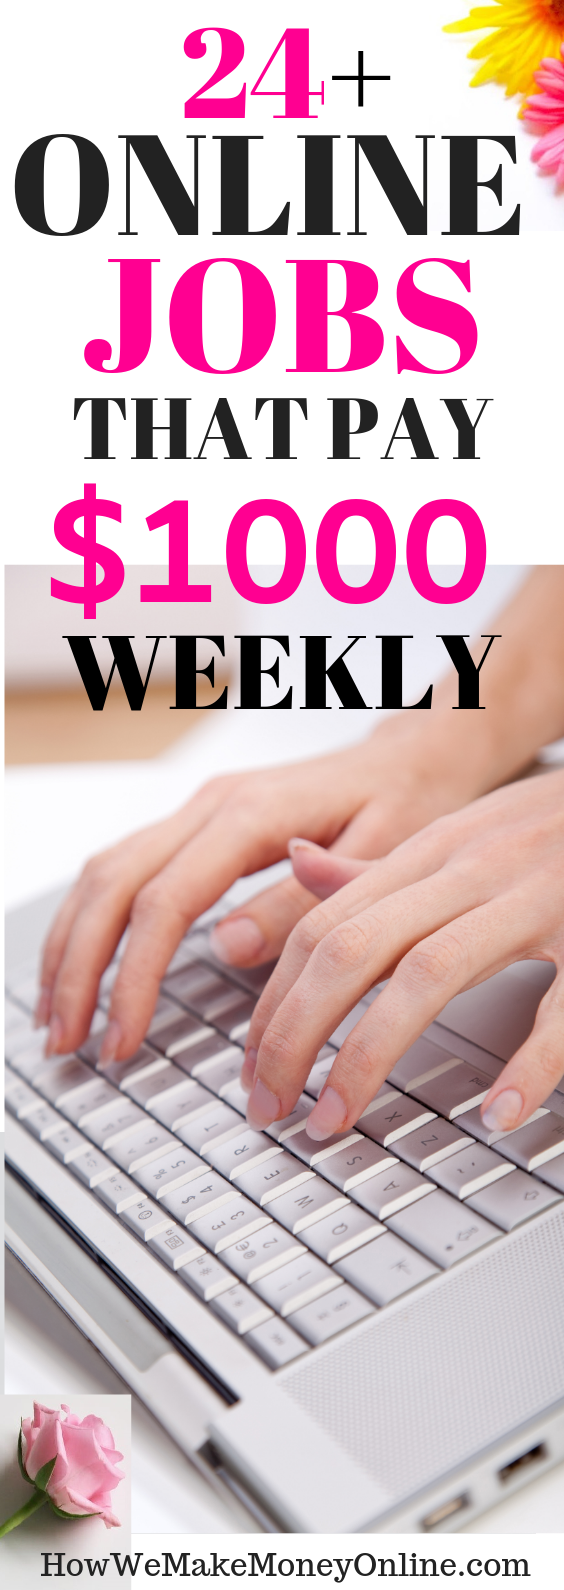 24 Online jobs that pay weekly. Get PAID every week. Looking for the BEST home jobs that pay weekly? In this post, I will SHOW you more than 30 work at home jobs that pay WEEKLY. Most of them are legitimate work from home jobs hiring now. No college degree needed. Also, you can make up to $24/hr or more. Apply for these high-paying work from home jobs and get paid EVERY WEEK. #workfromhome #workfromhomejobs #onlinejobs #momjobs #homejobs #onlinejobsfromhome #remotejobs #telecommute #virtualjobs #makemoney #sidehustles #diy